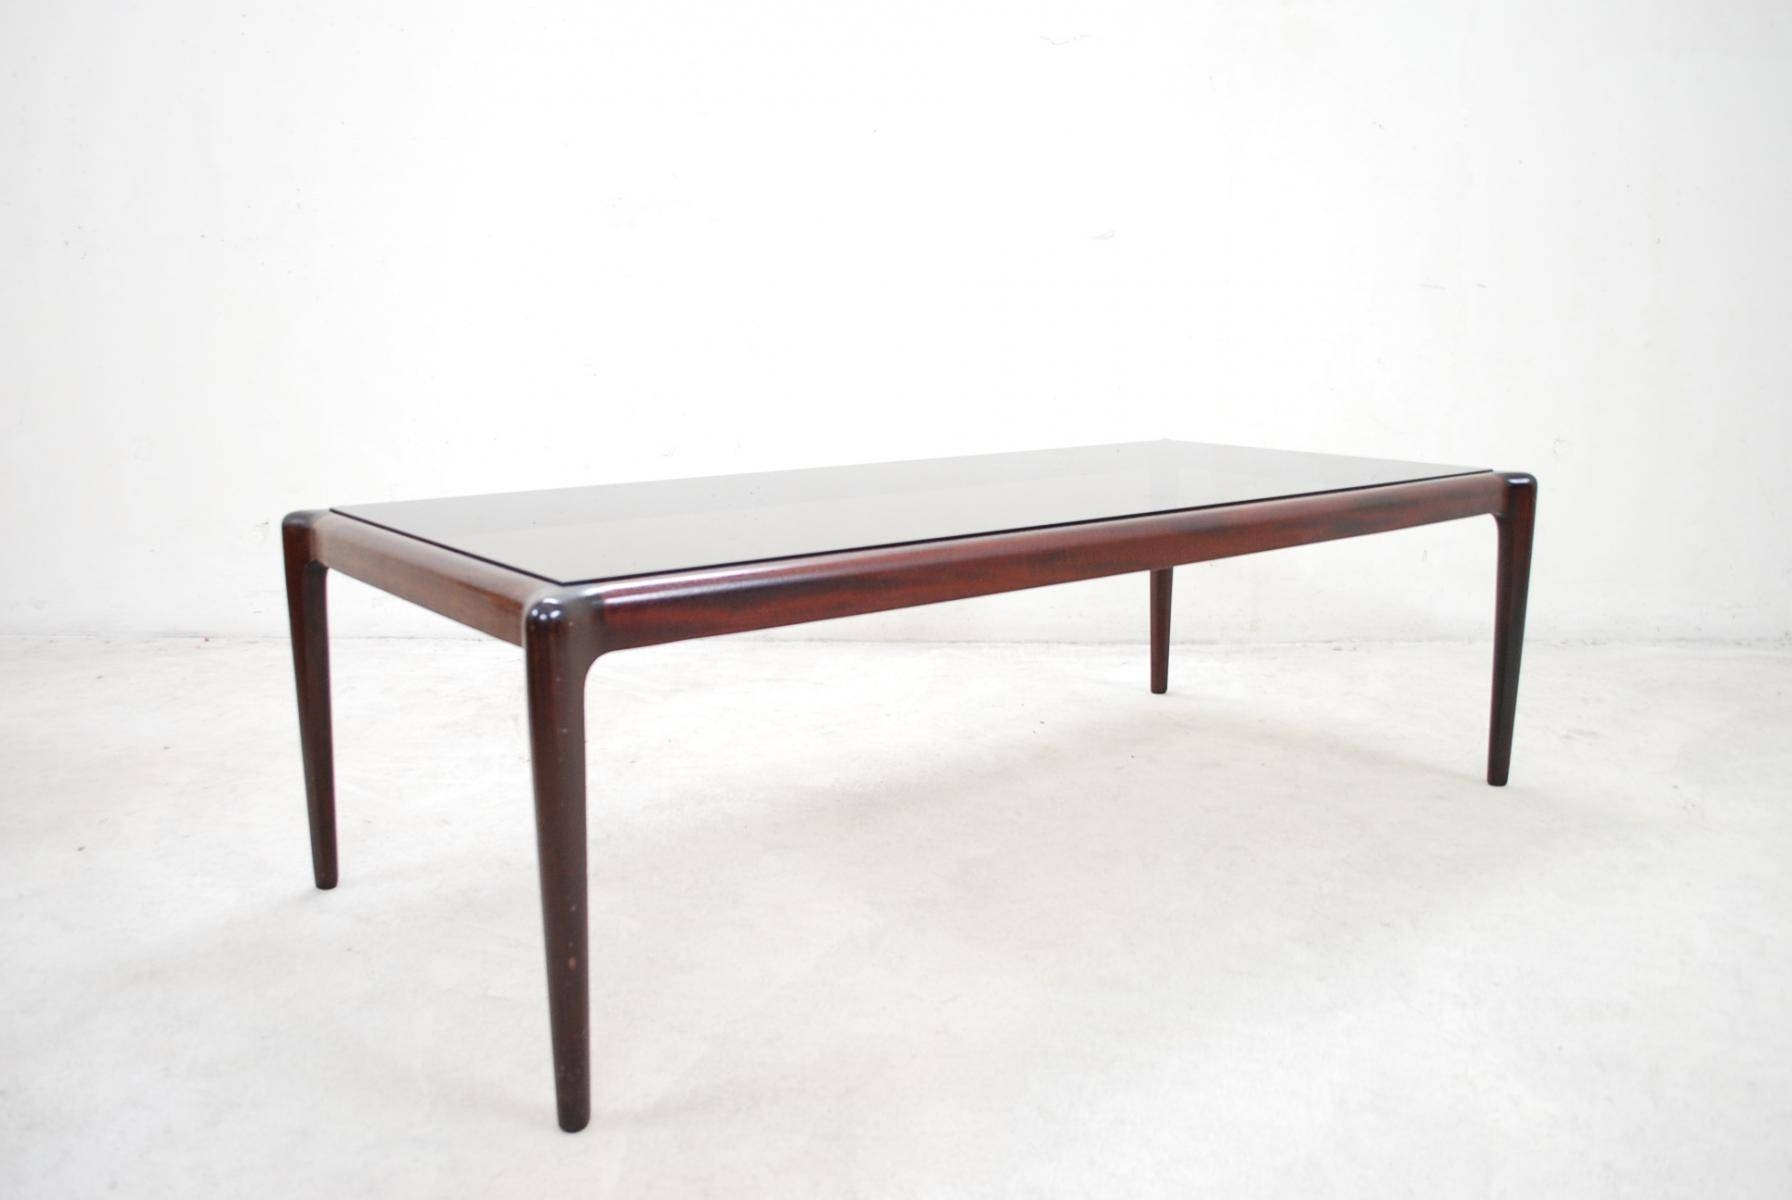 Large Vintage Mahogany & Smoked Glass Coffee Table For Sale At Pamono Regarding Retro Smoked Glass Coffee Tables (View 11 of 30)